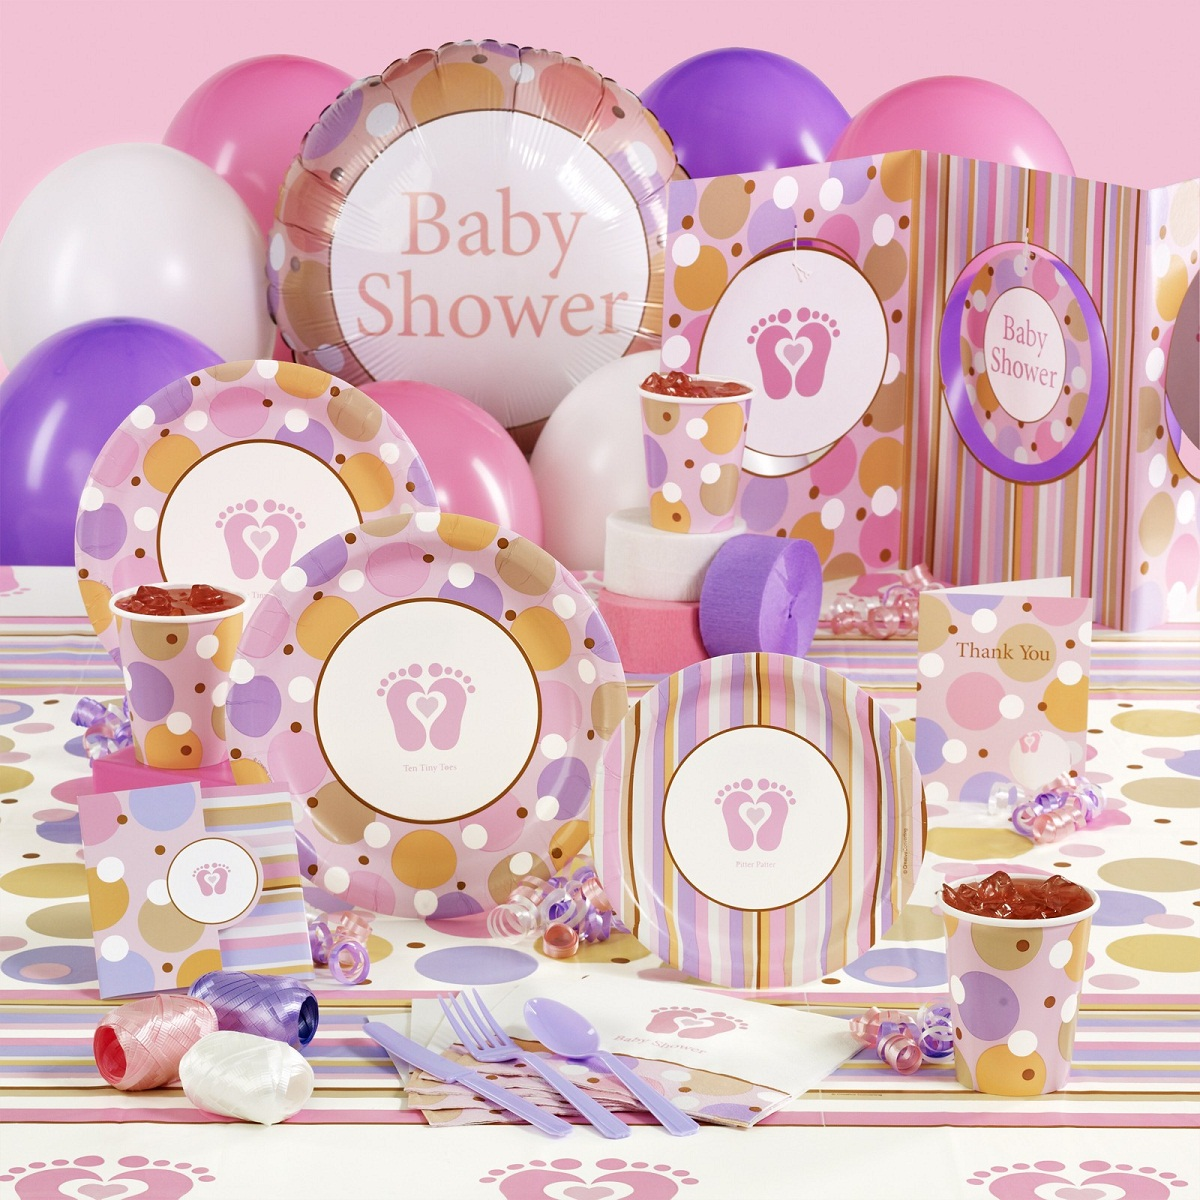 who plans a baby shower